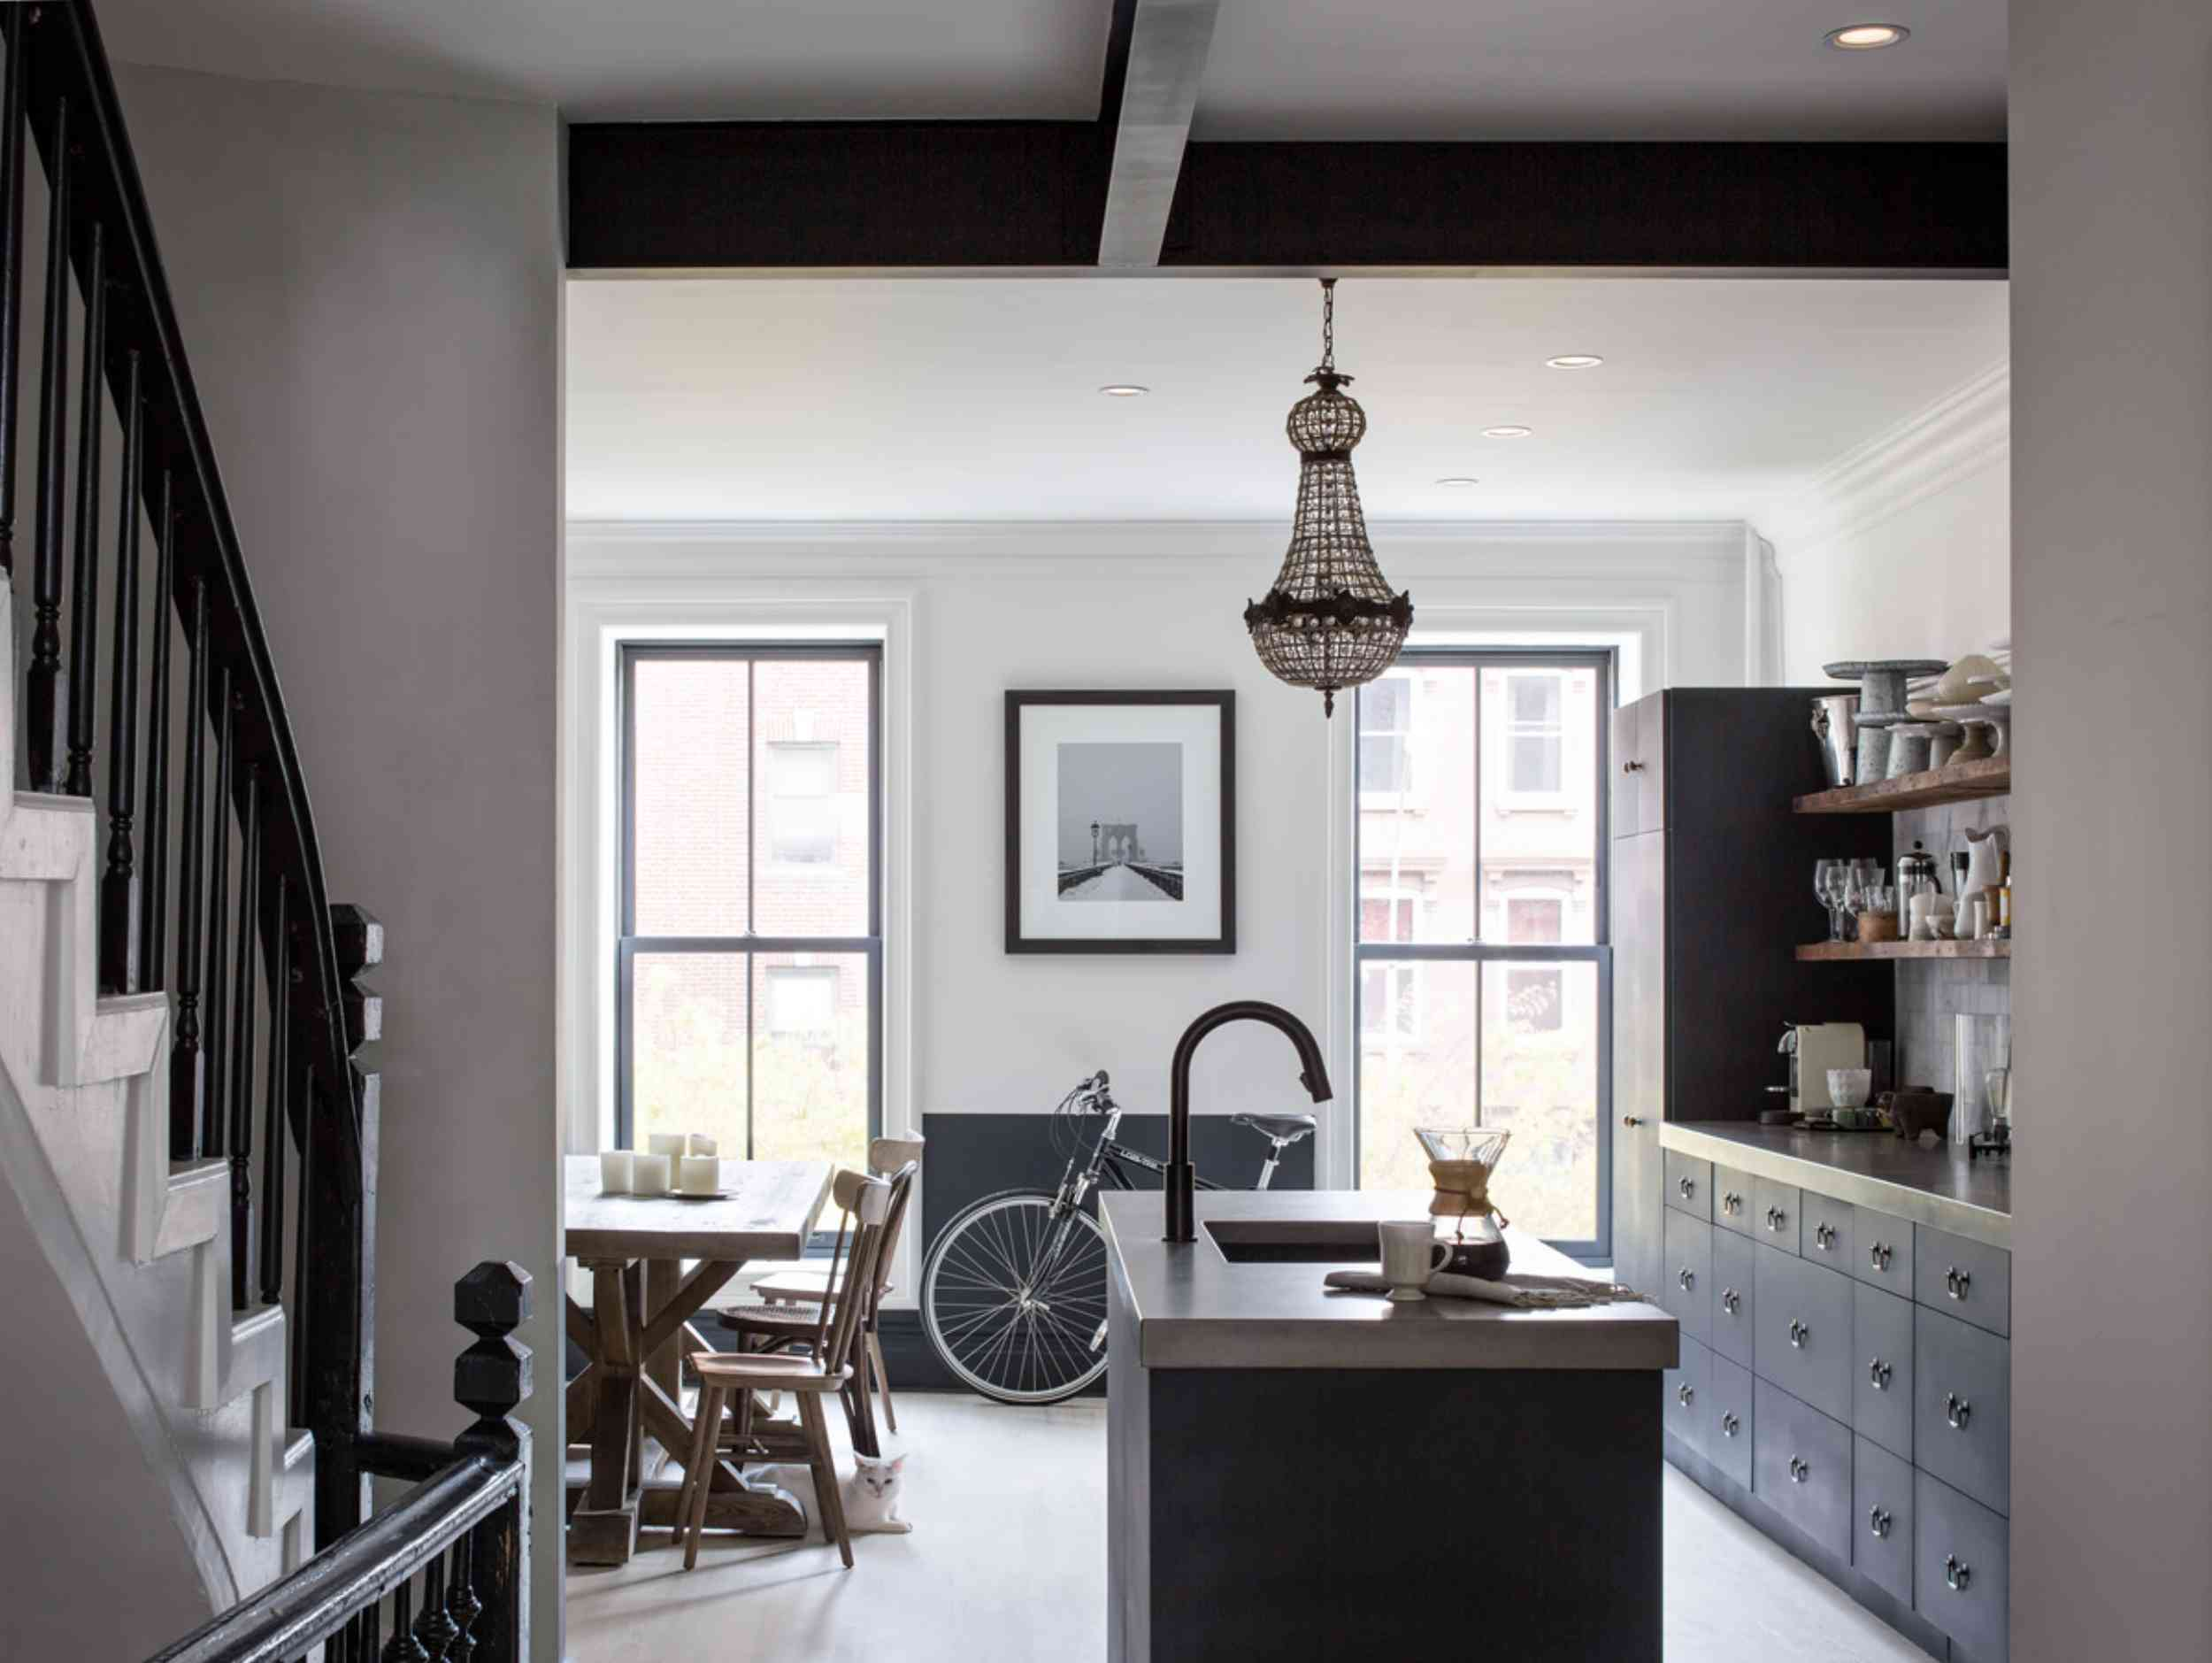 A navy and white kitchen with black windows, black ceiling beams, and black hardware